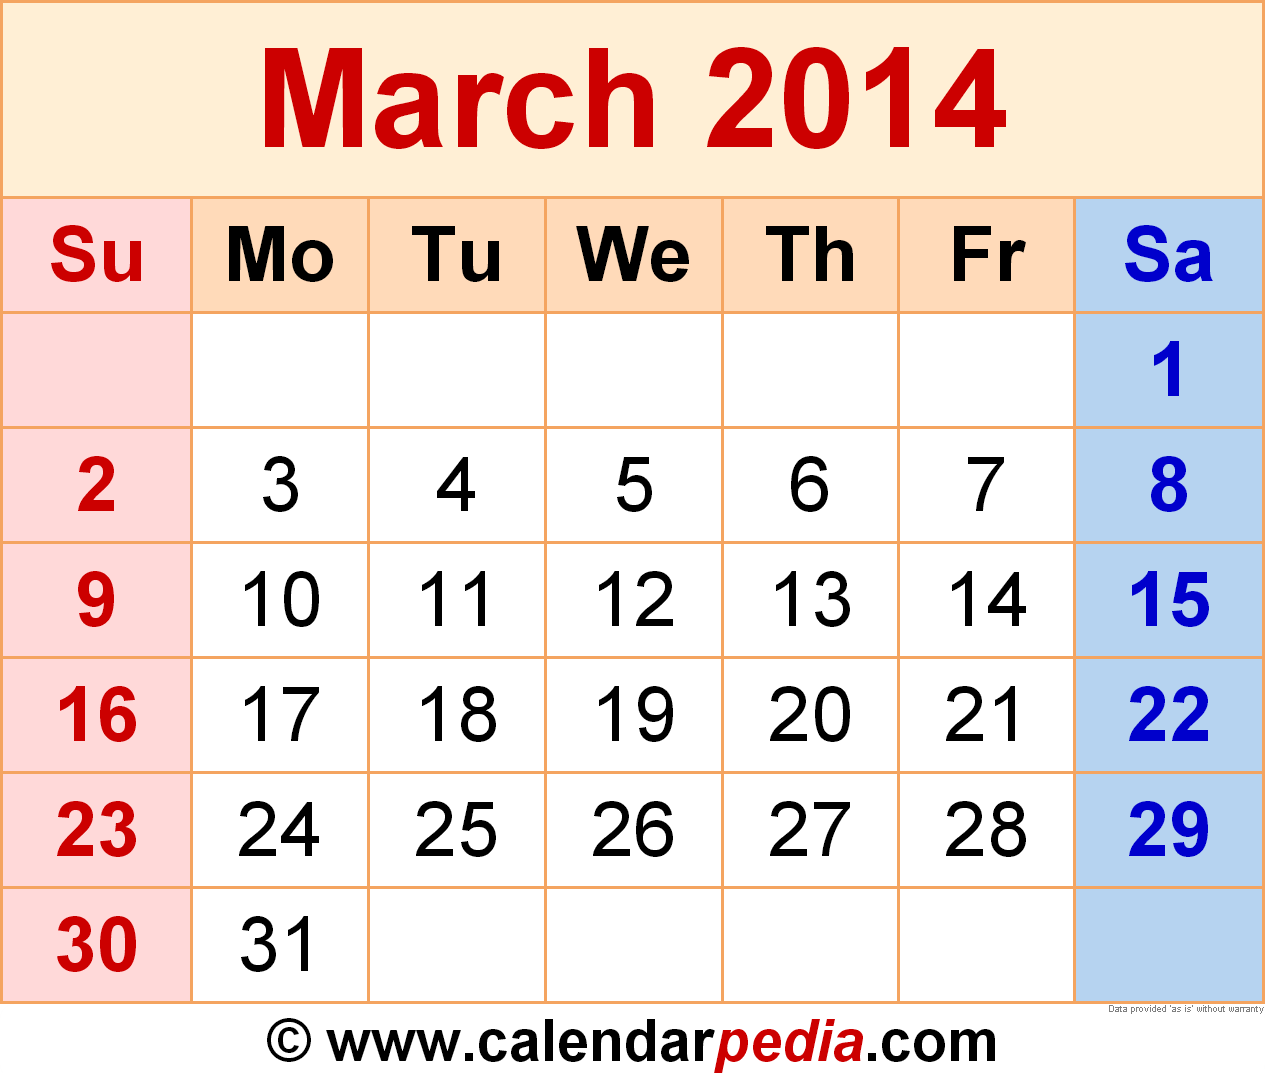 March 2014 Calendar Templates For Word Excel And Pdf